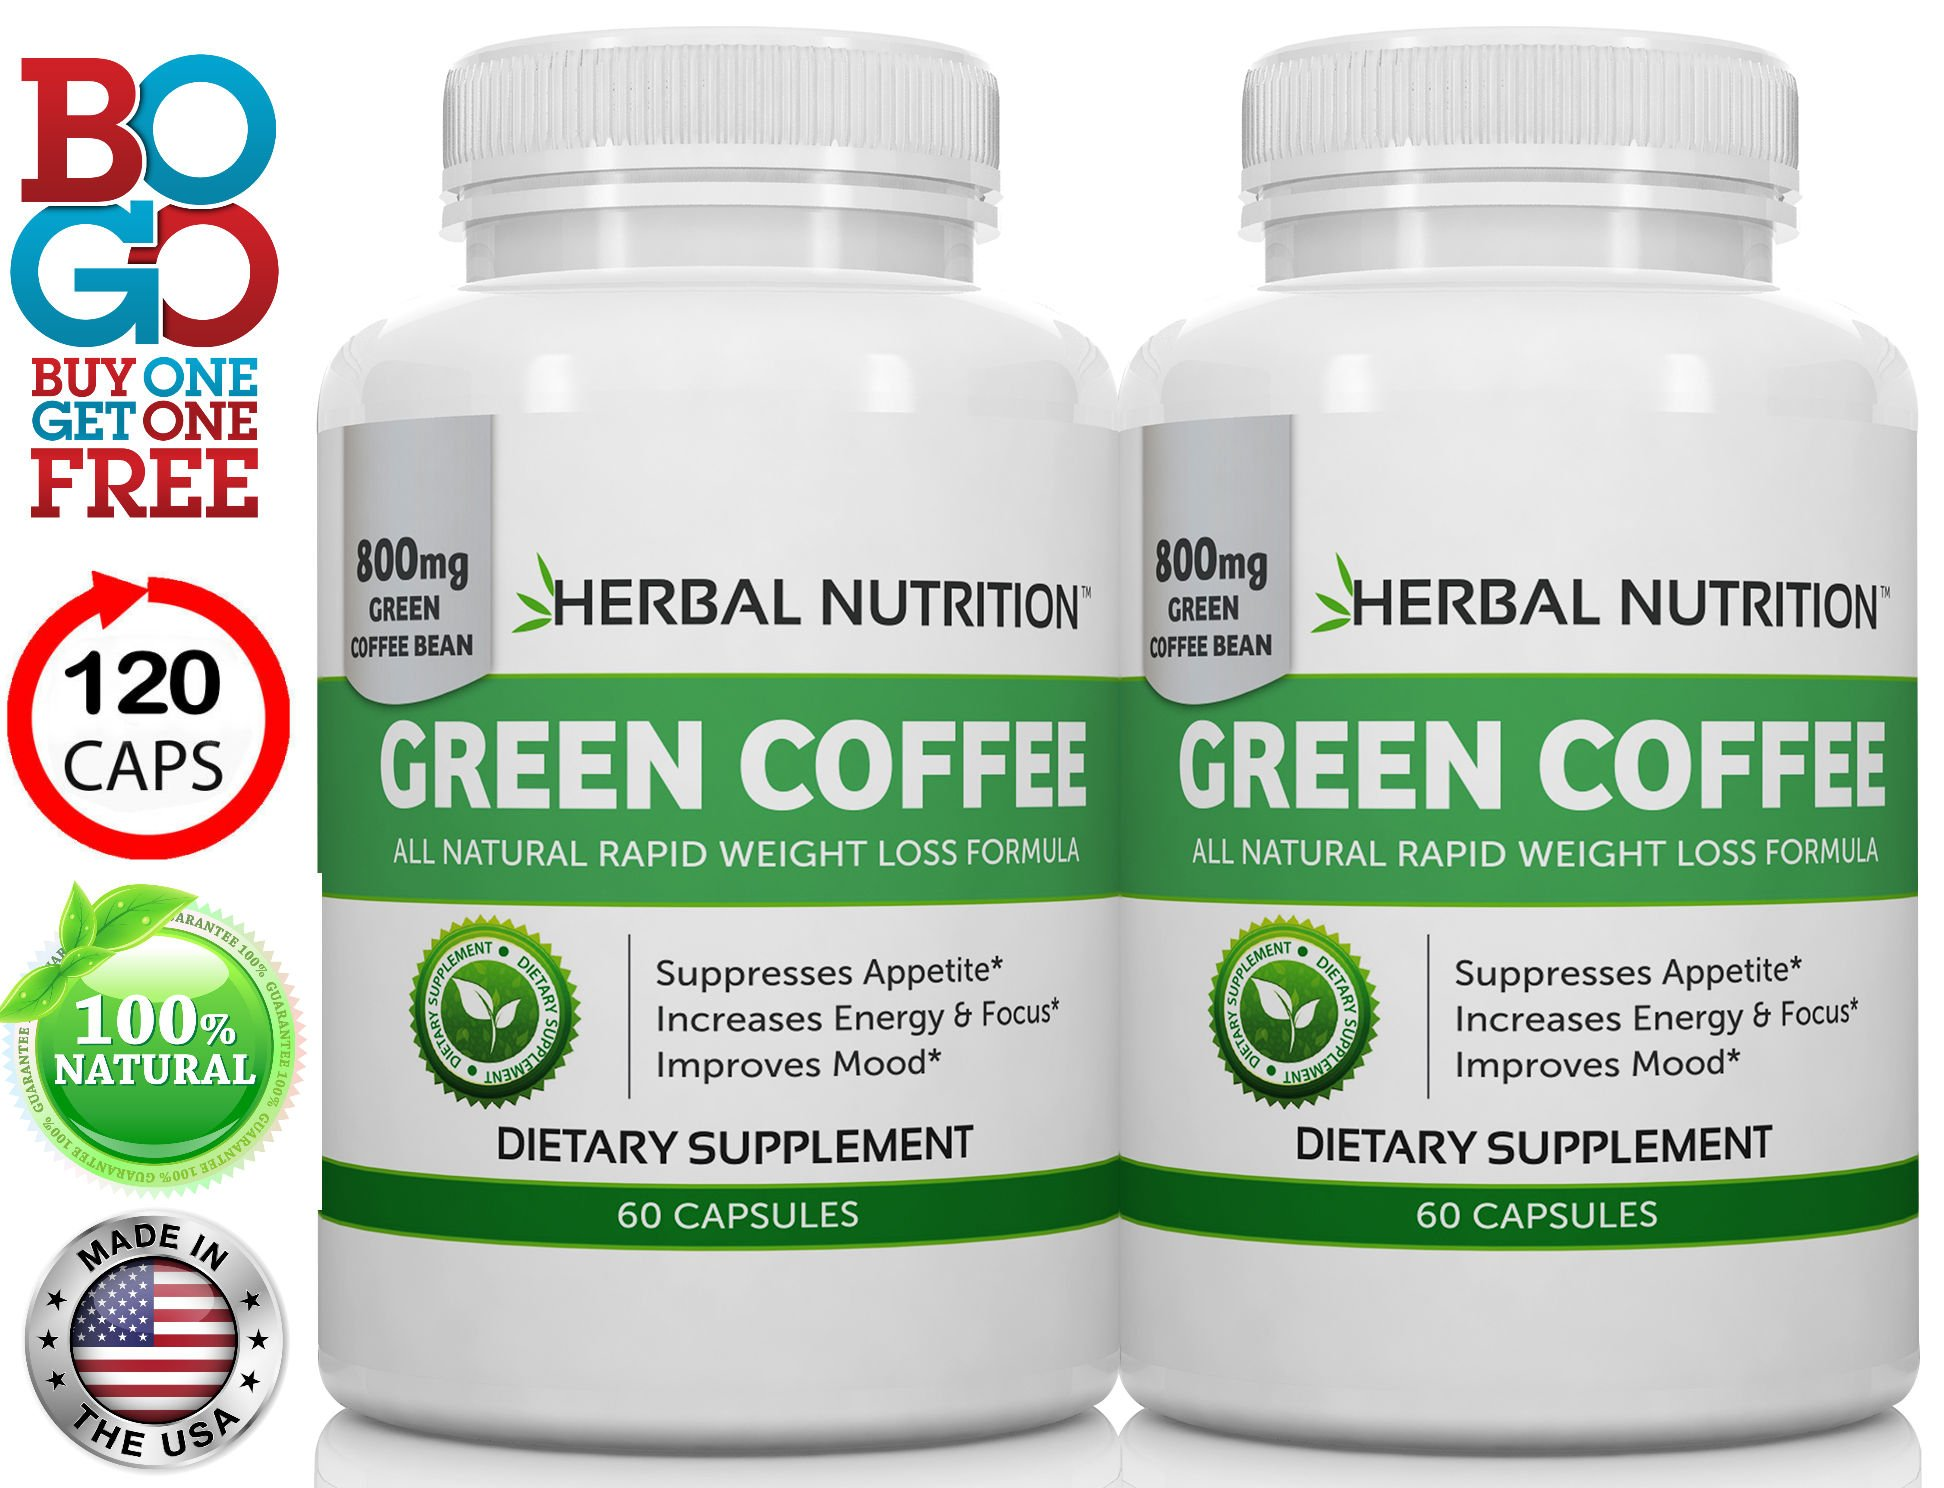 #1 Rated Green Coffee Bean Extract for Weight Loss, BOGO 120 Capsules, 2 Month Supply, 800mg at 50% Chlorogenic Acid, All Natural Weight Loss Supplement, Free Shipping